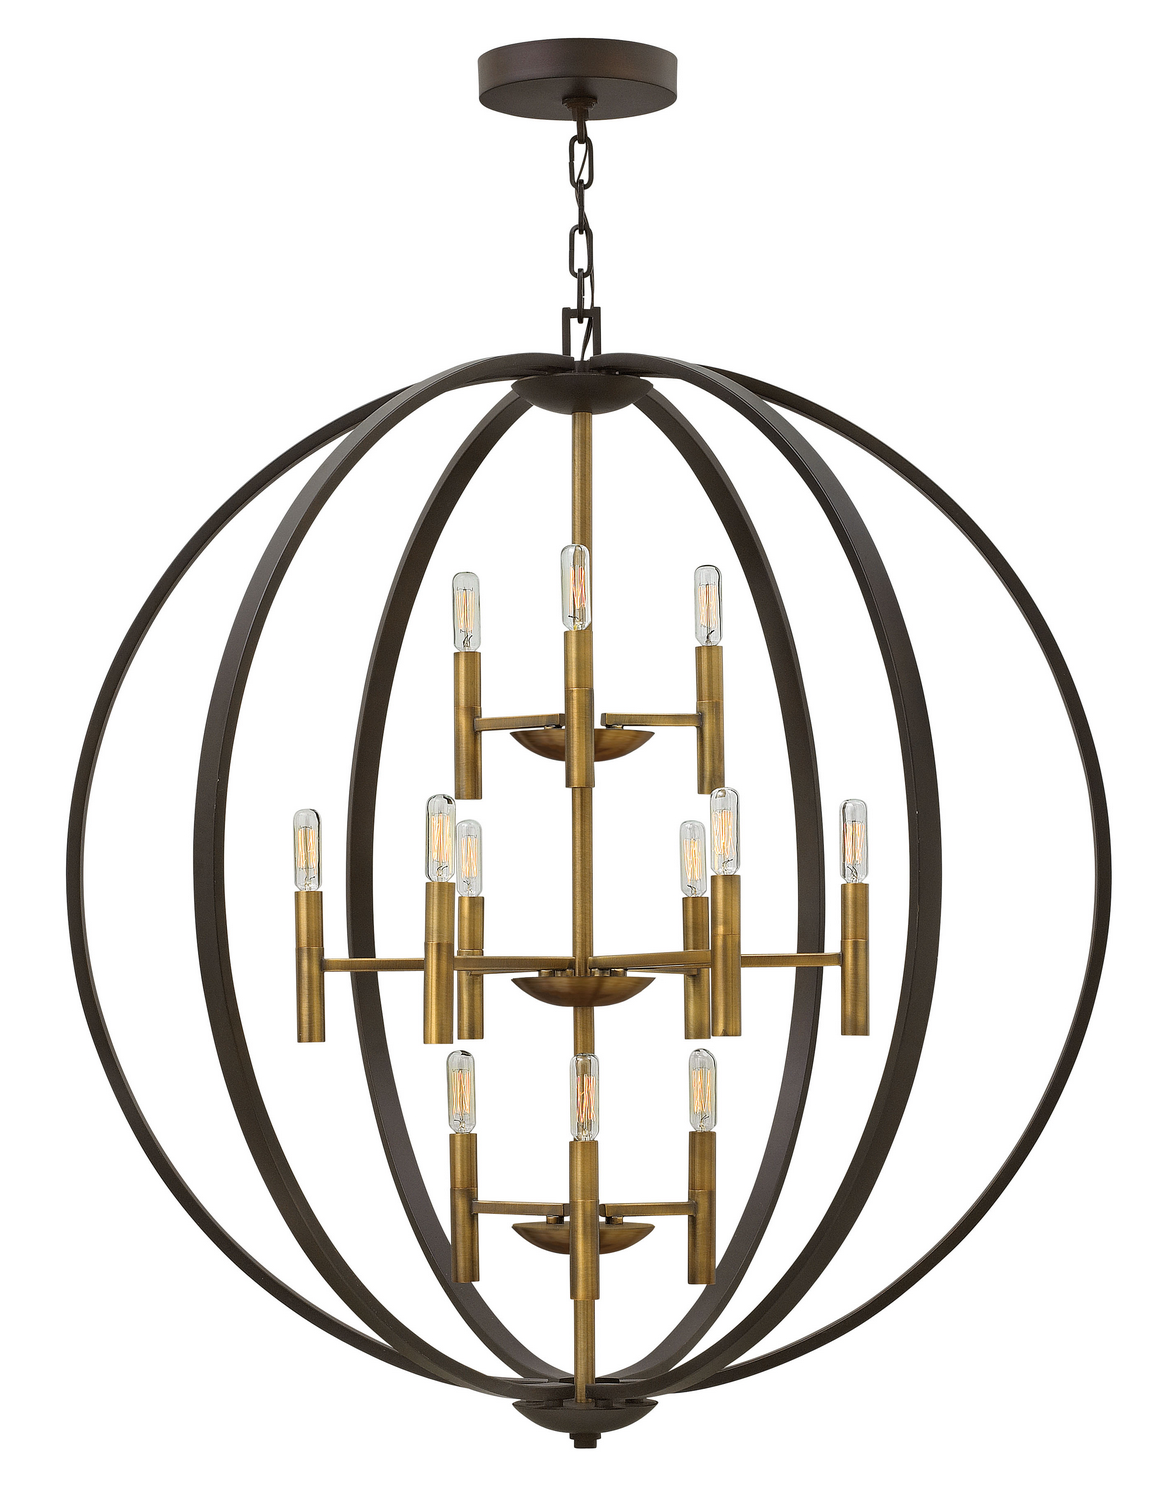 12 Light Foyer Pendant from the Euclid collection by Hinkley 3469SB